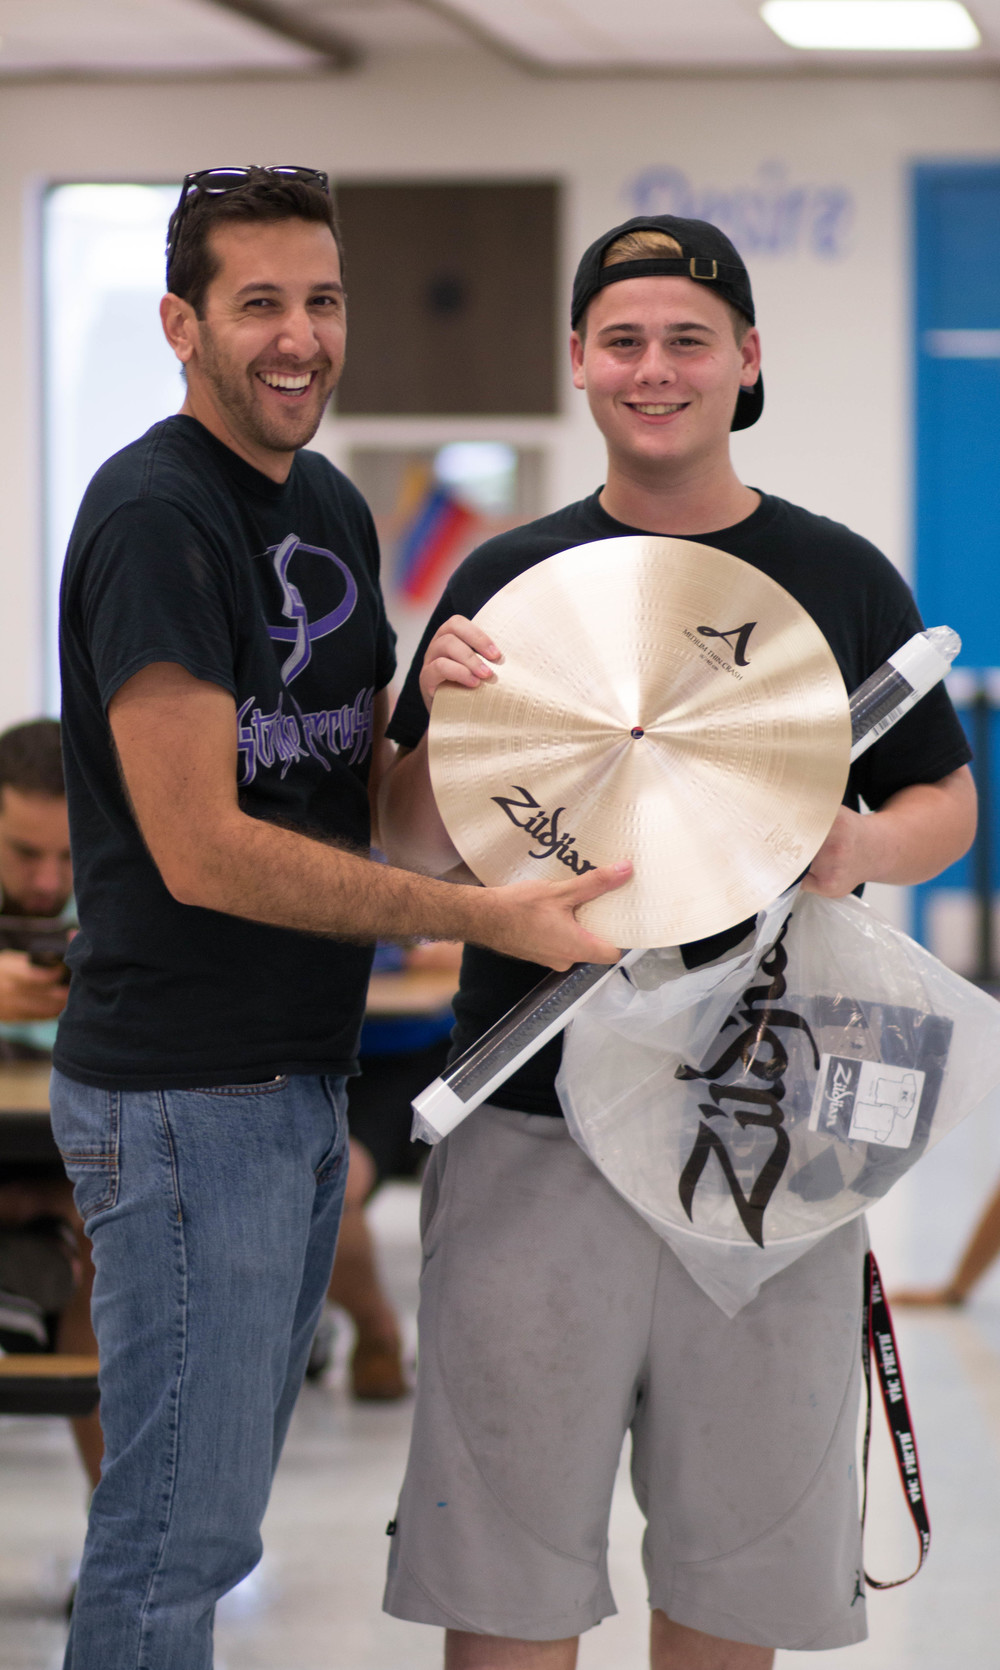 "Grand prize winner took home a 16"" Zildjian Cymbal!"